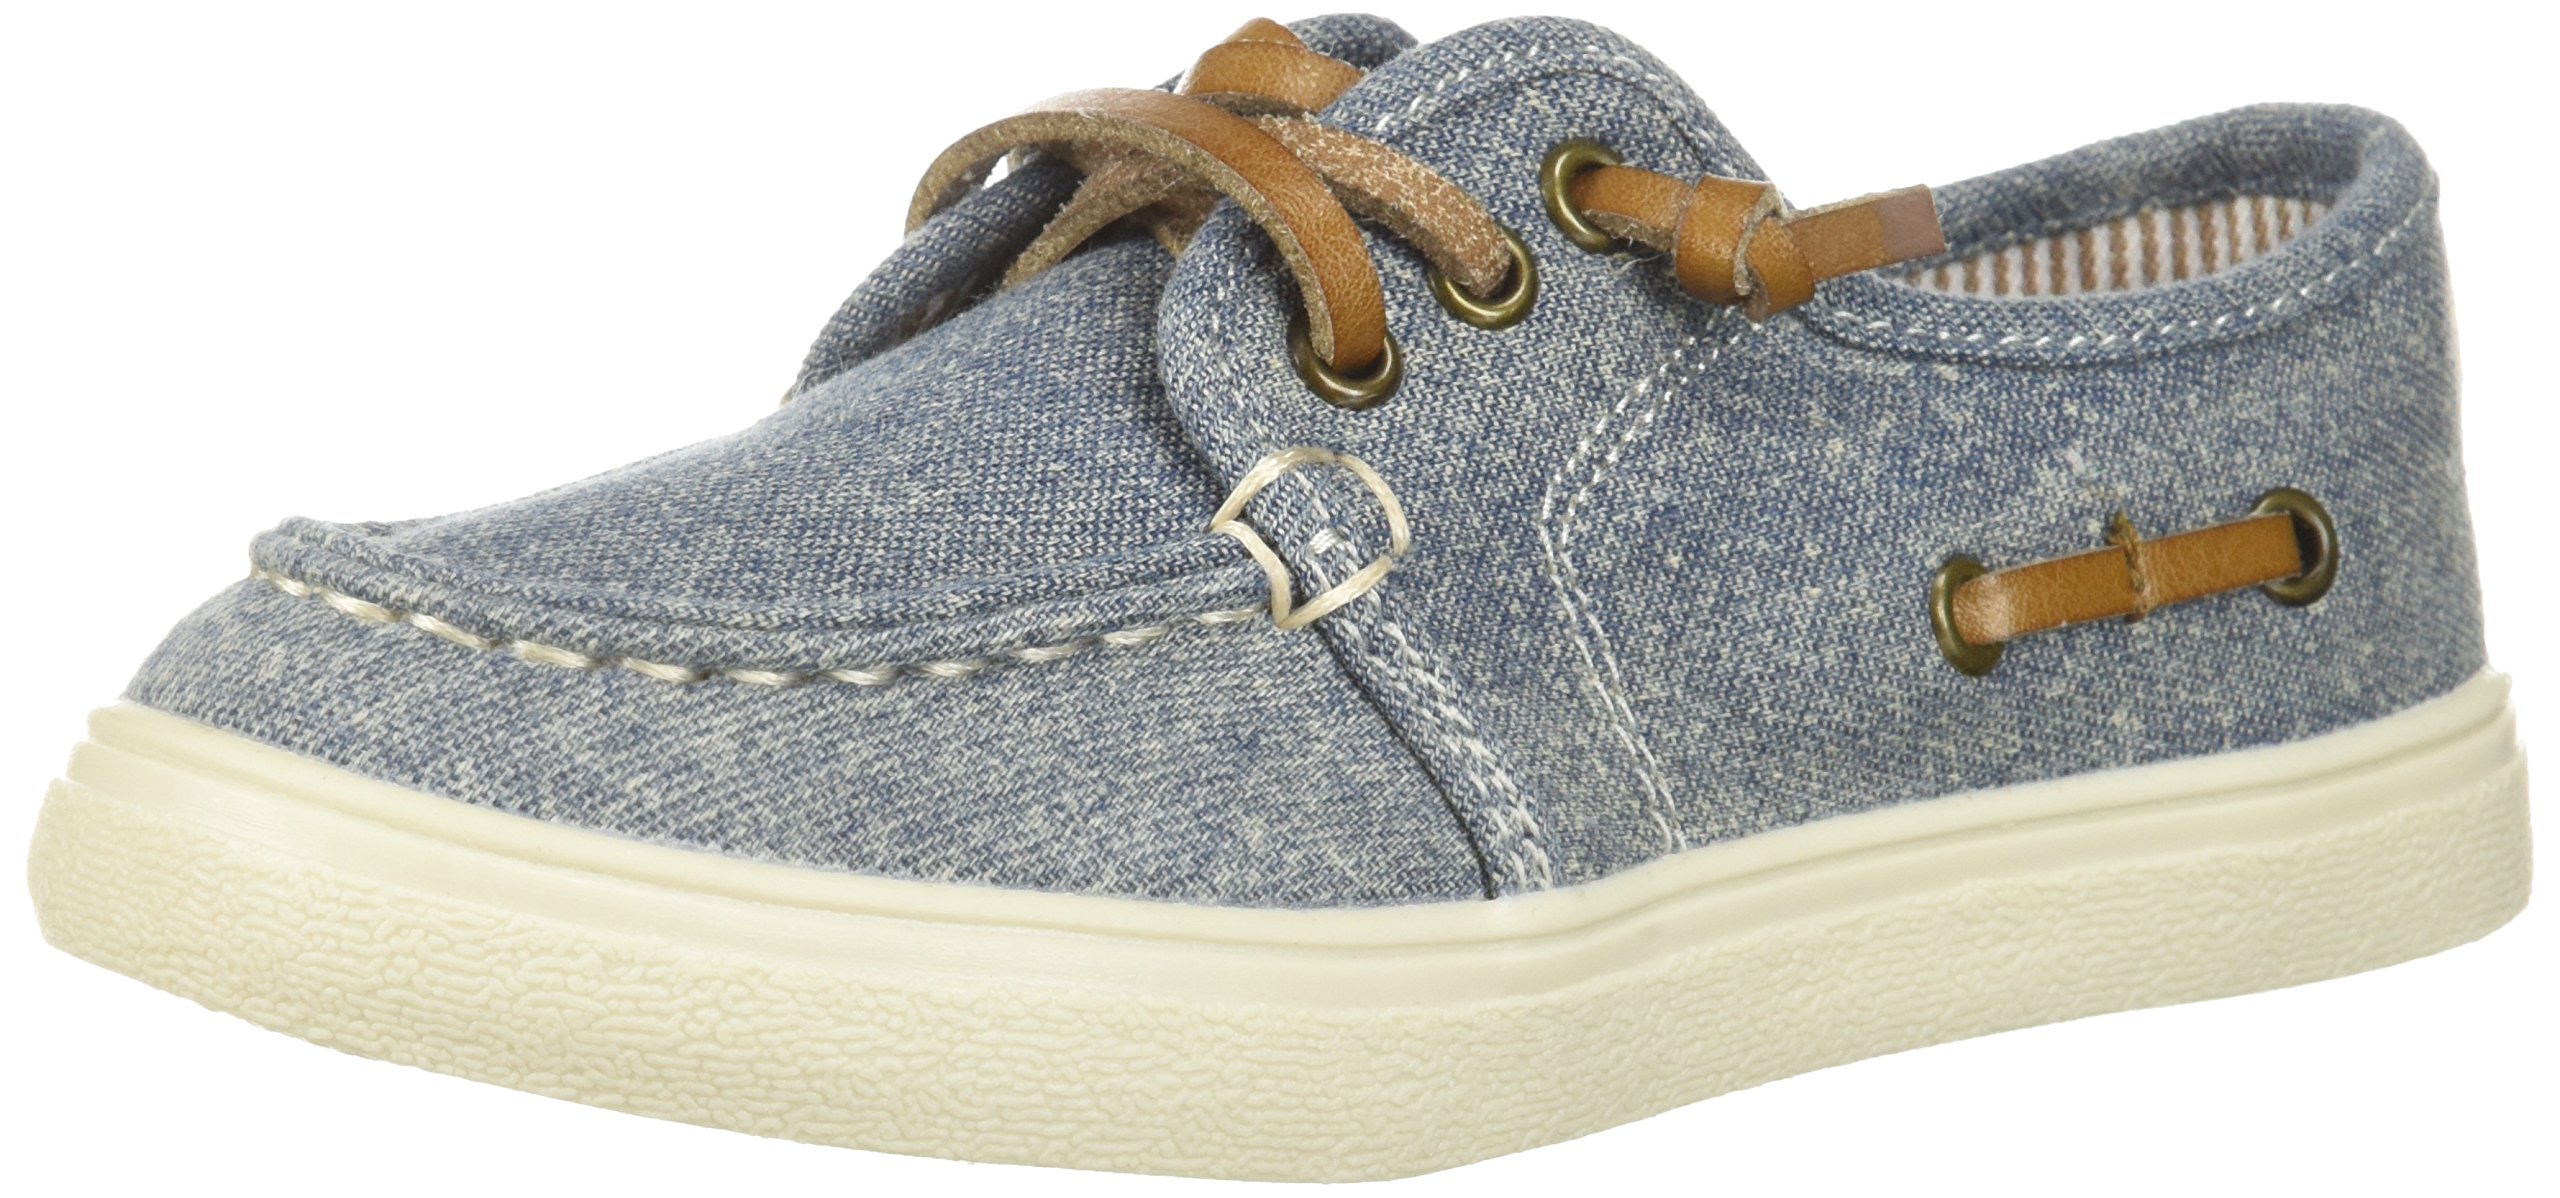 The Children's Place Boys' TB Laceup Street Slipper, Chambray, TDDLR 11 Medium US Infant